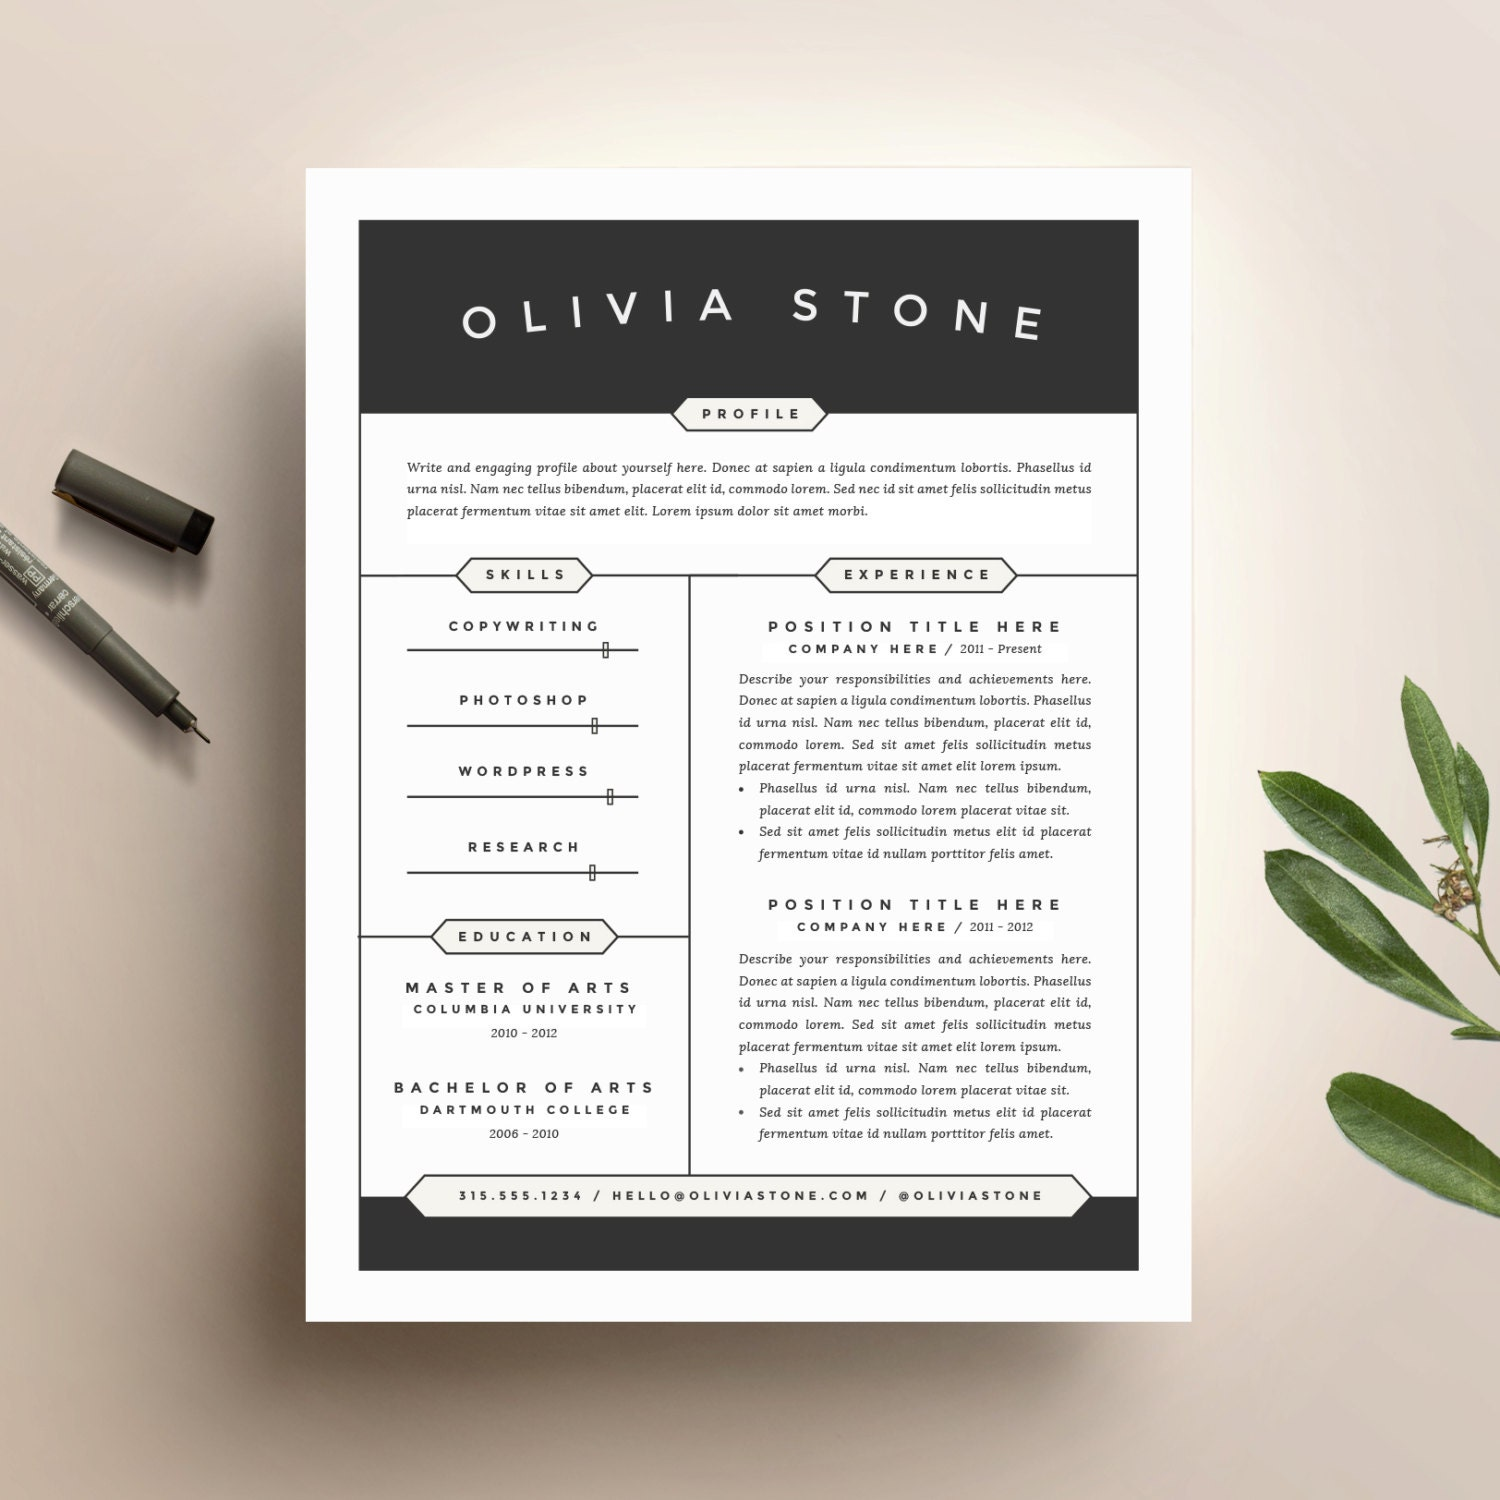 Free Sample Resume Template Cover Letter And Resume Writing Tips Free  Sample Resume Template Cover Letter  Modern Resume Tips